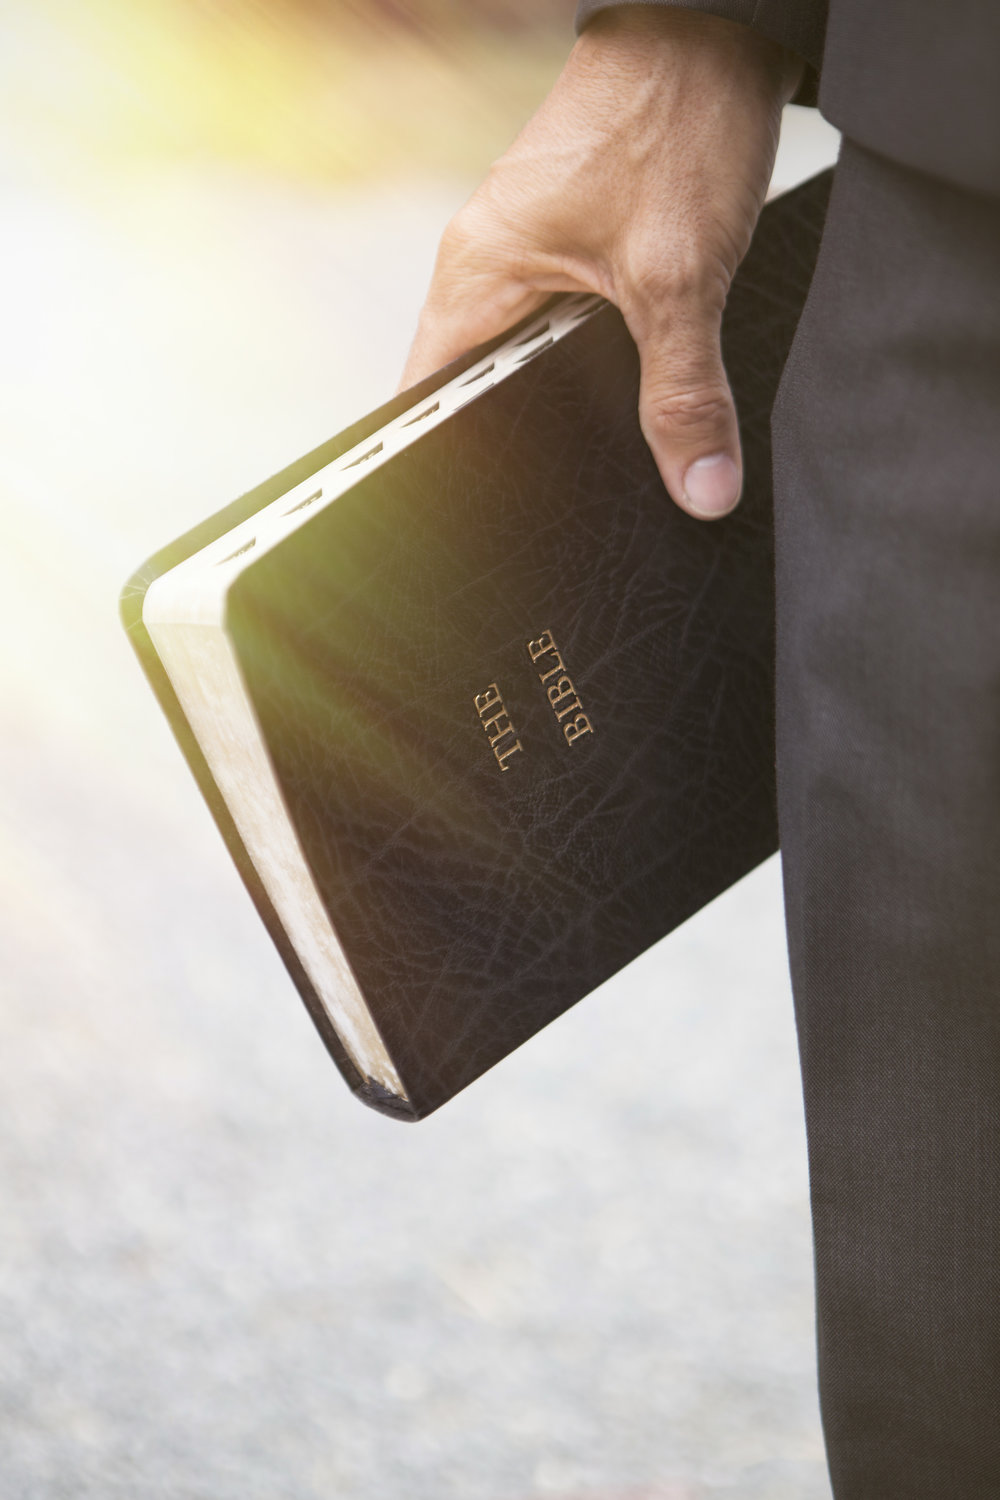 Core Values - - Encourage men to become all that God desires of them.- Pray faithfully and expectantly.- Minister with a servant's heart to others.- Base our services on the non-compromising message of the Bible.- Maintain financial integrity with accountability.